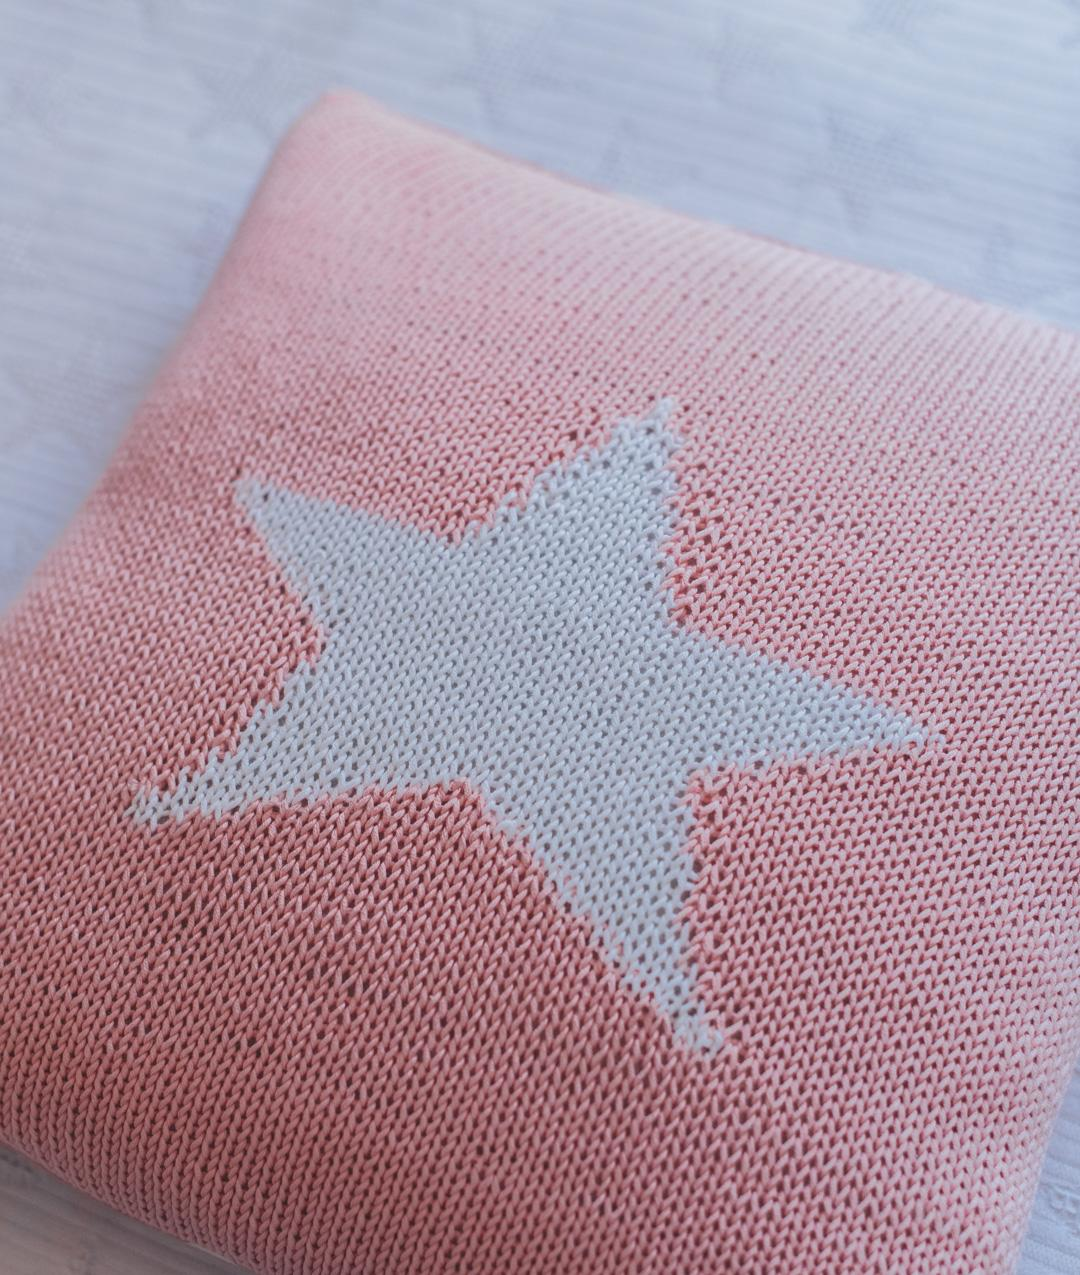 Homeware - CottonHomeware - Cotton - MY LITTLE STAR CUSHION - 1